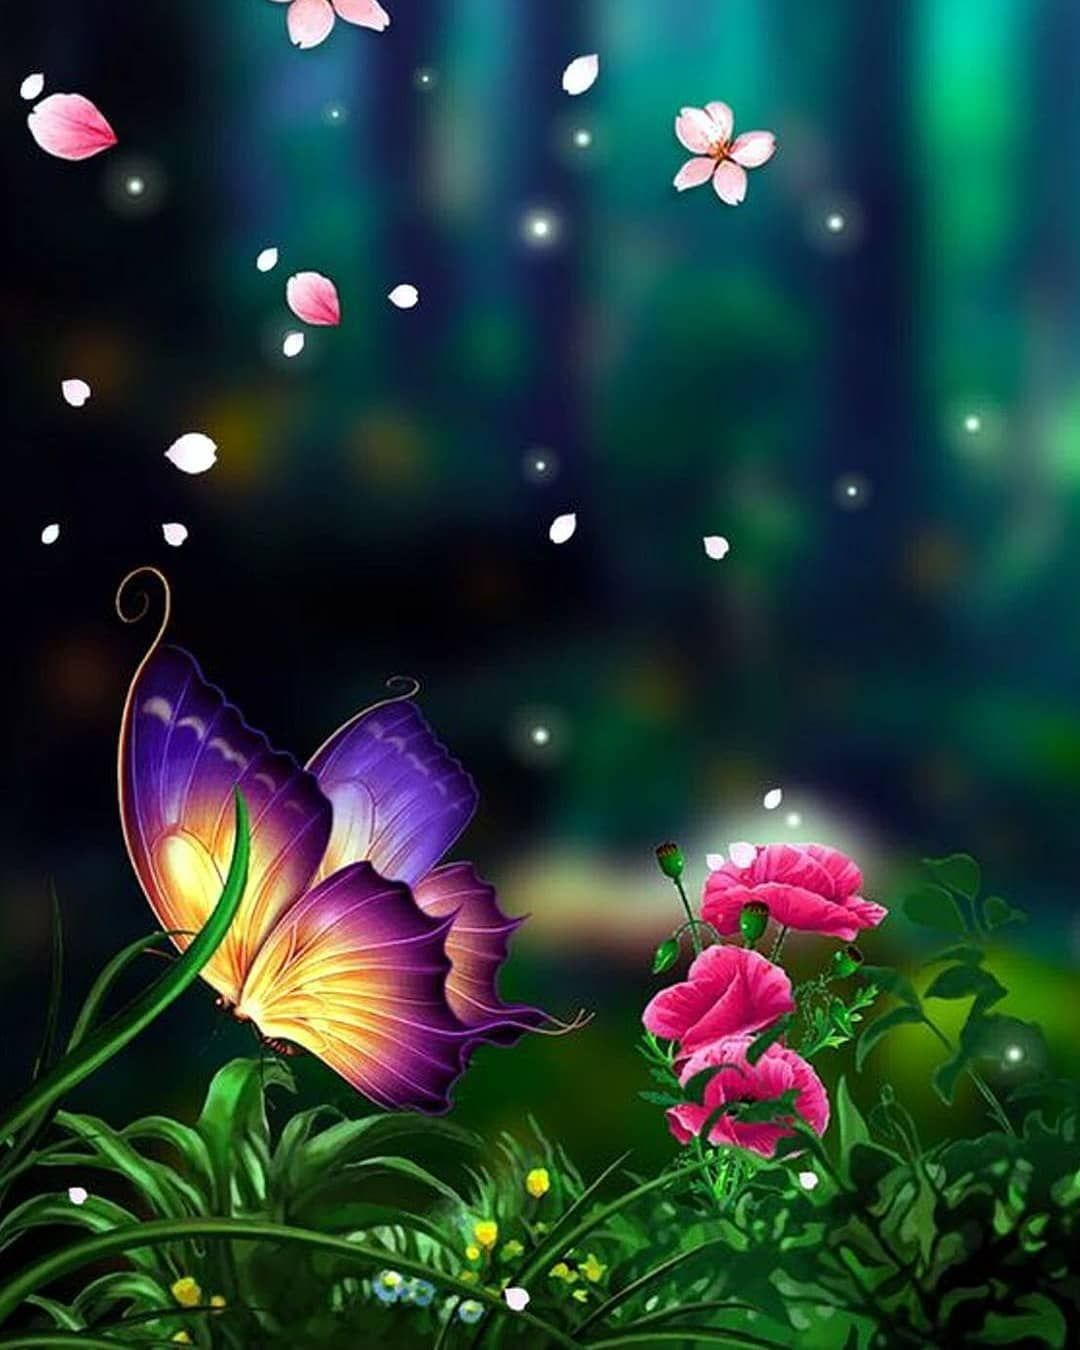 Nature Wallpaper For Jio Phone Butterfly Wallpaper Backgrounds Dreamcatcher Wallpaper Background Hd Wallpaper